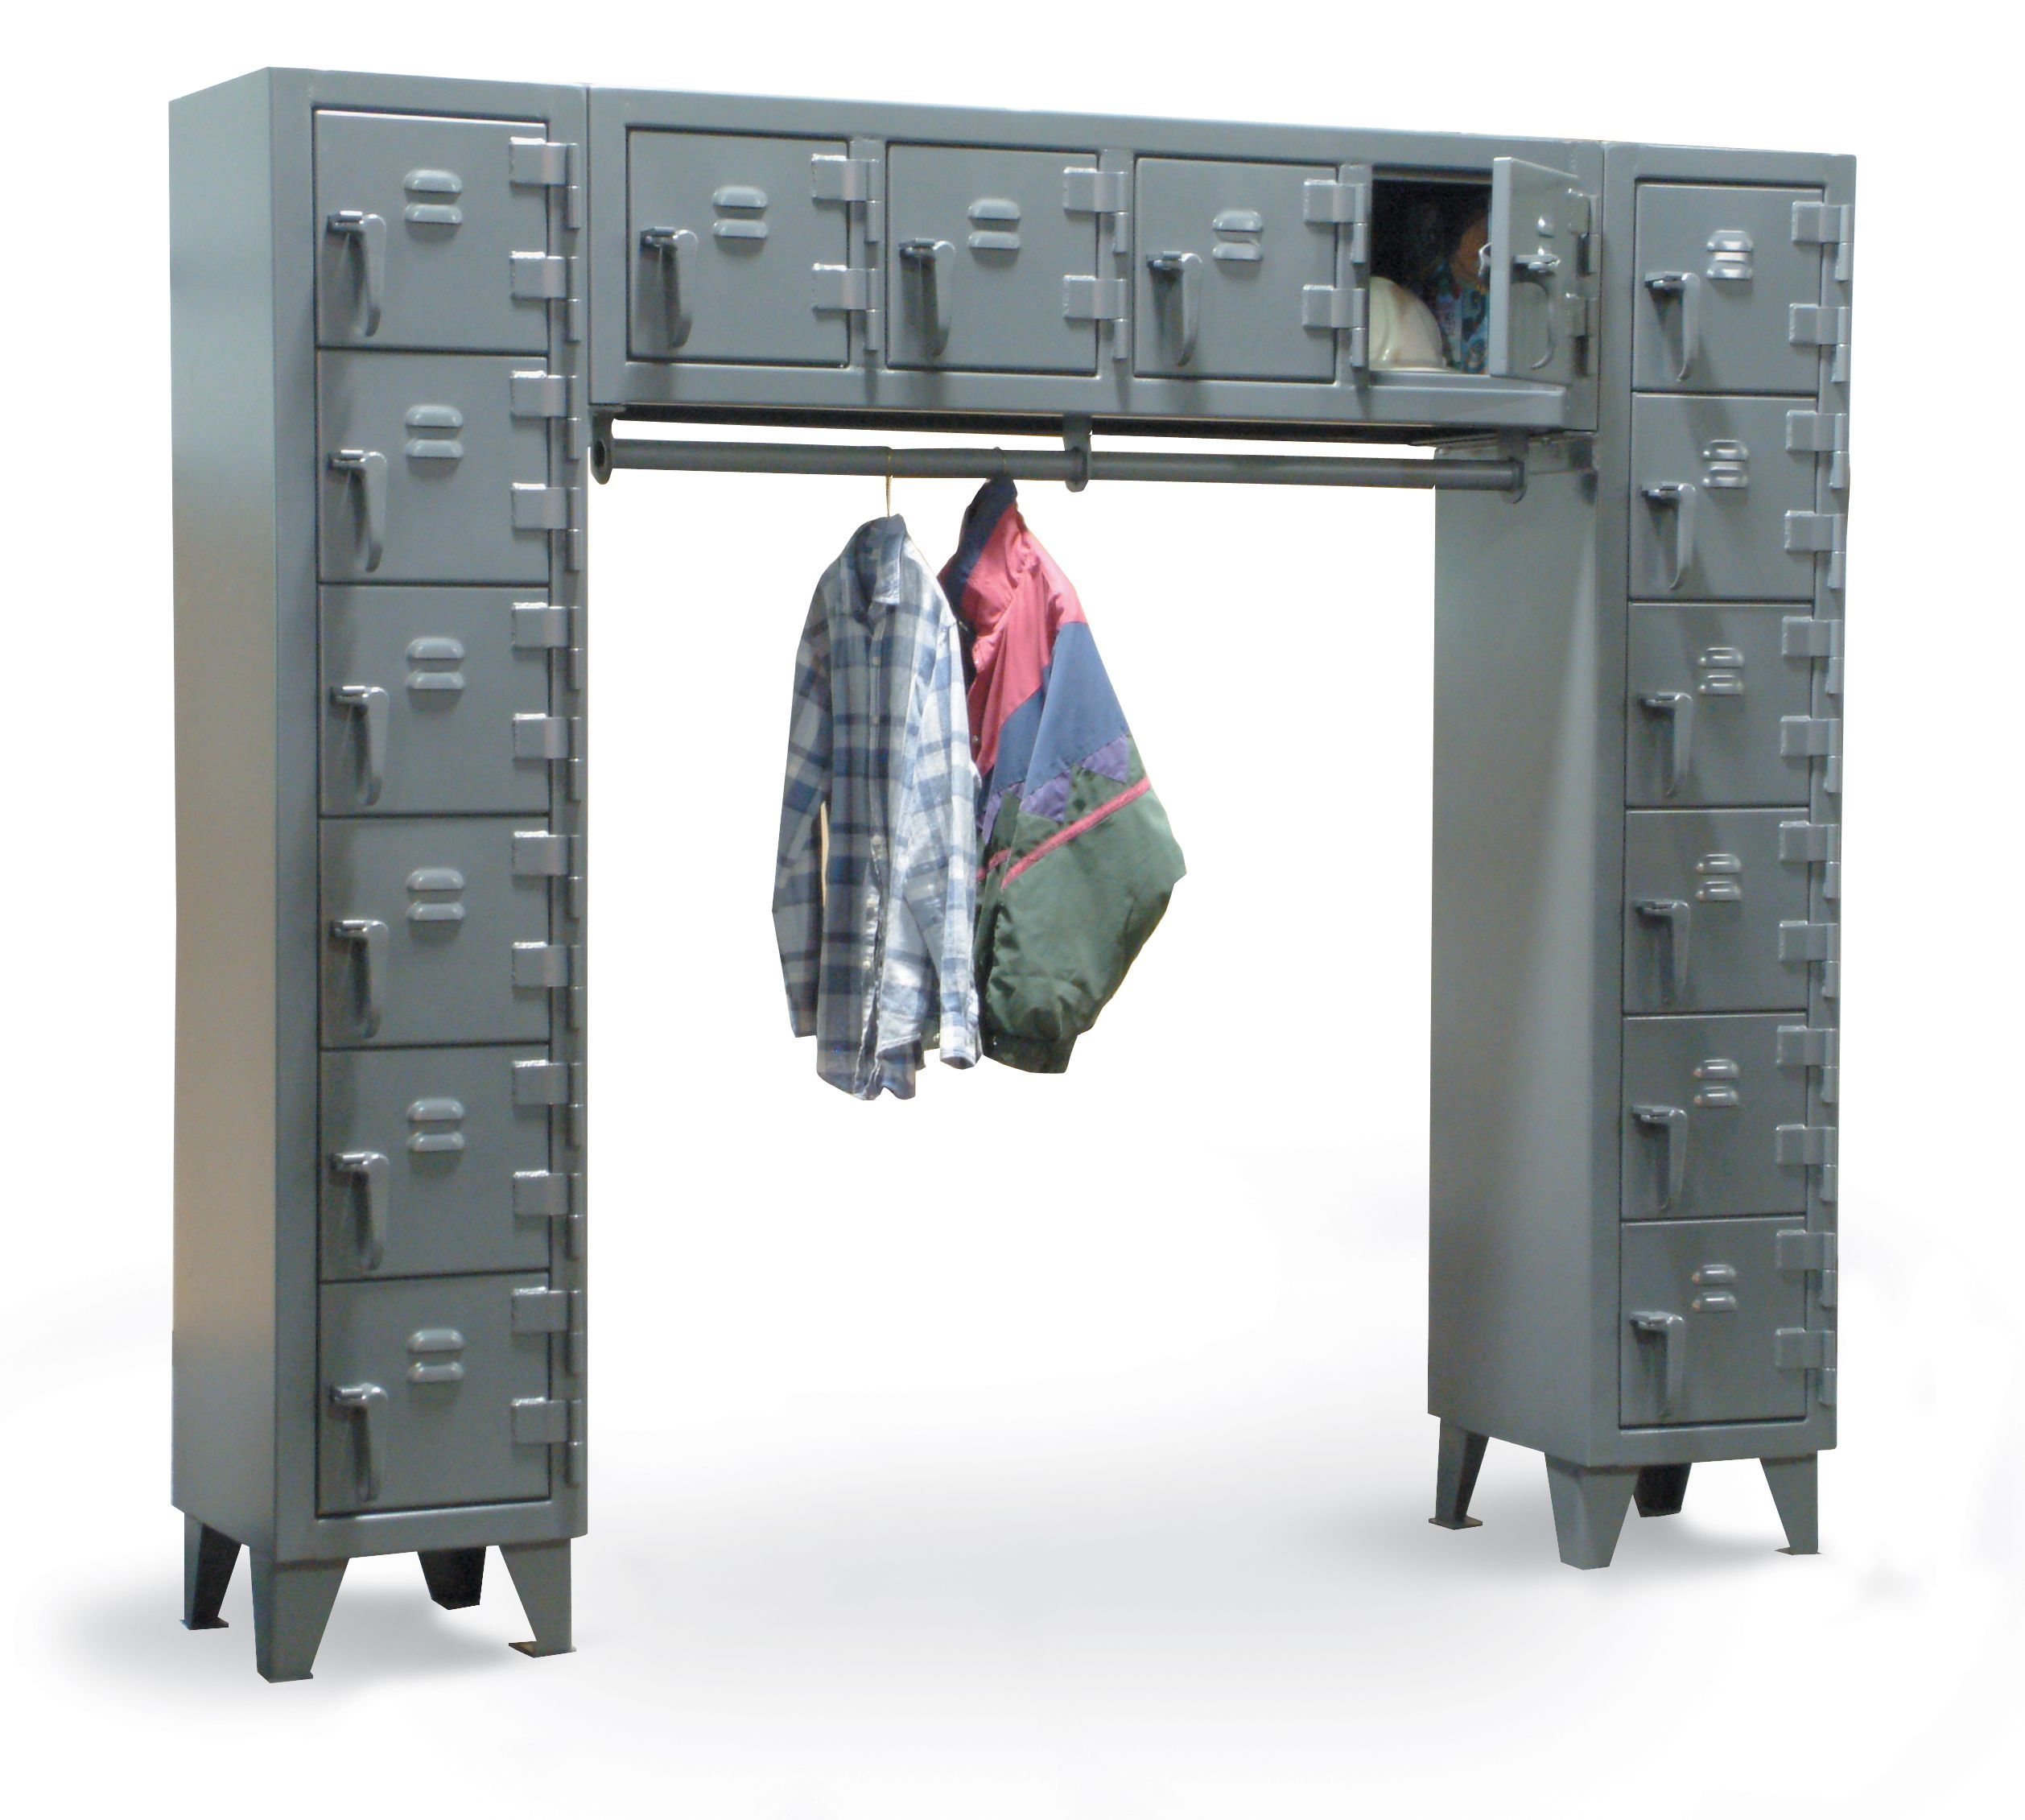 Free Standing partment Locker partment locker with small partments with louvered doors and 1 wardrobe